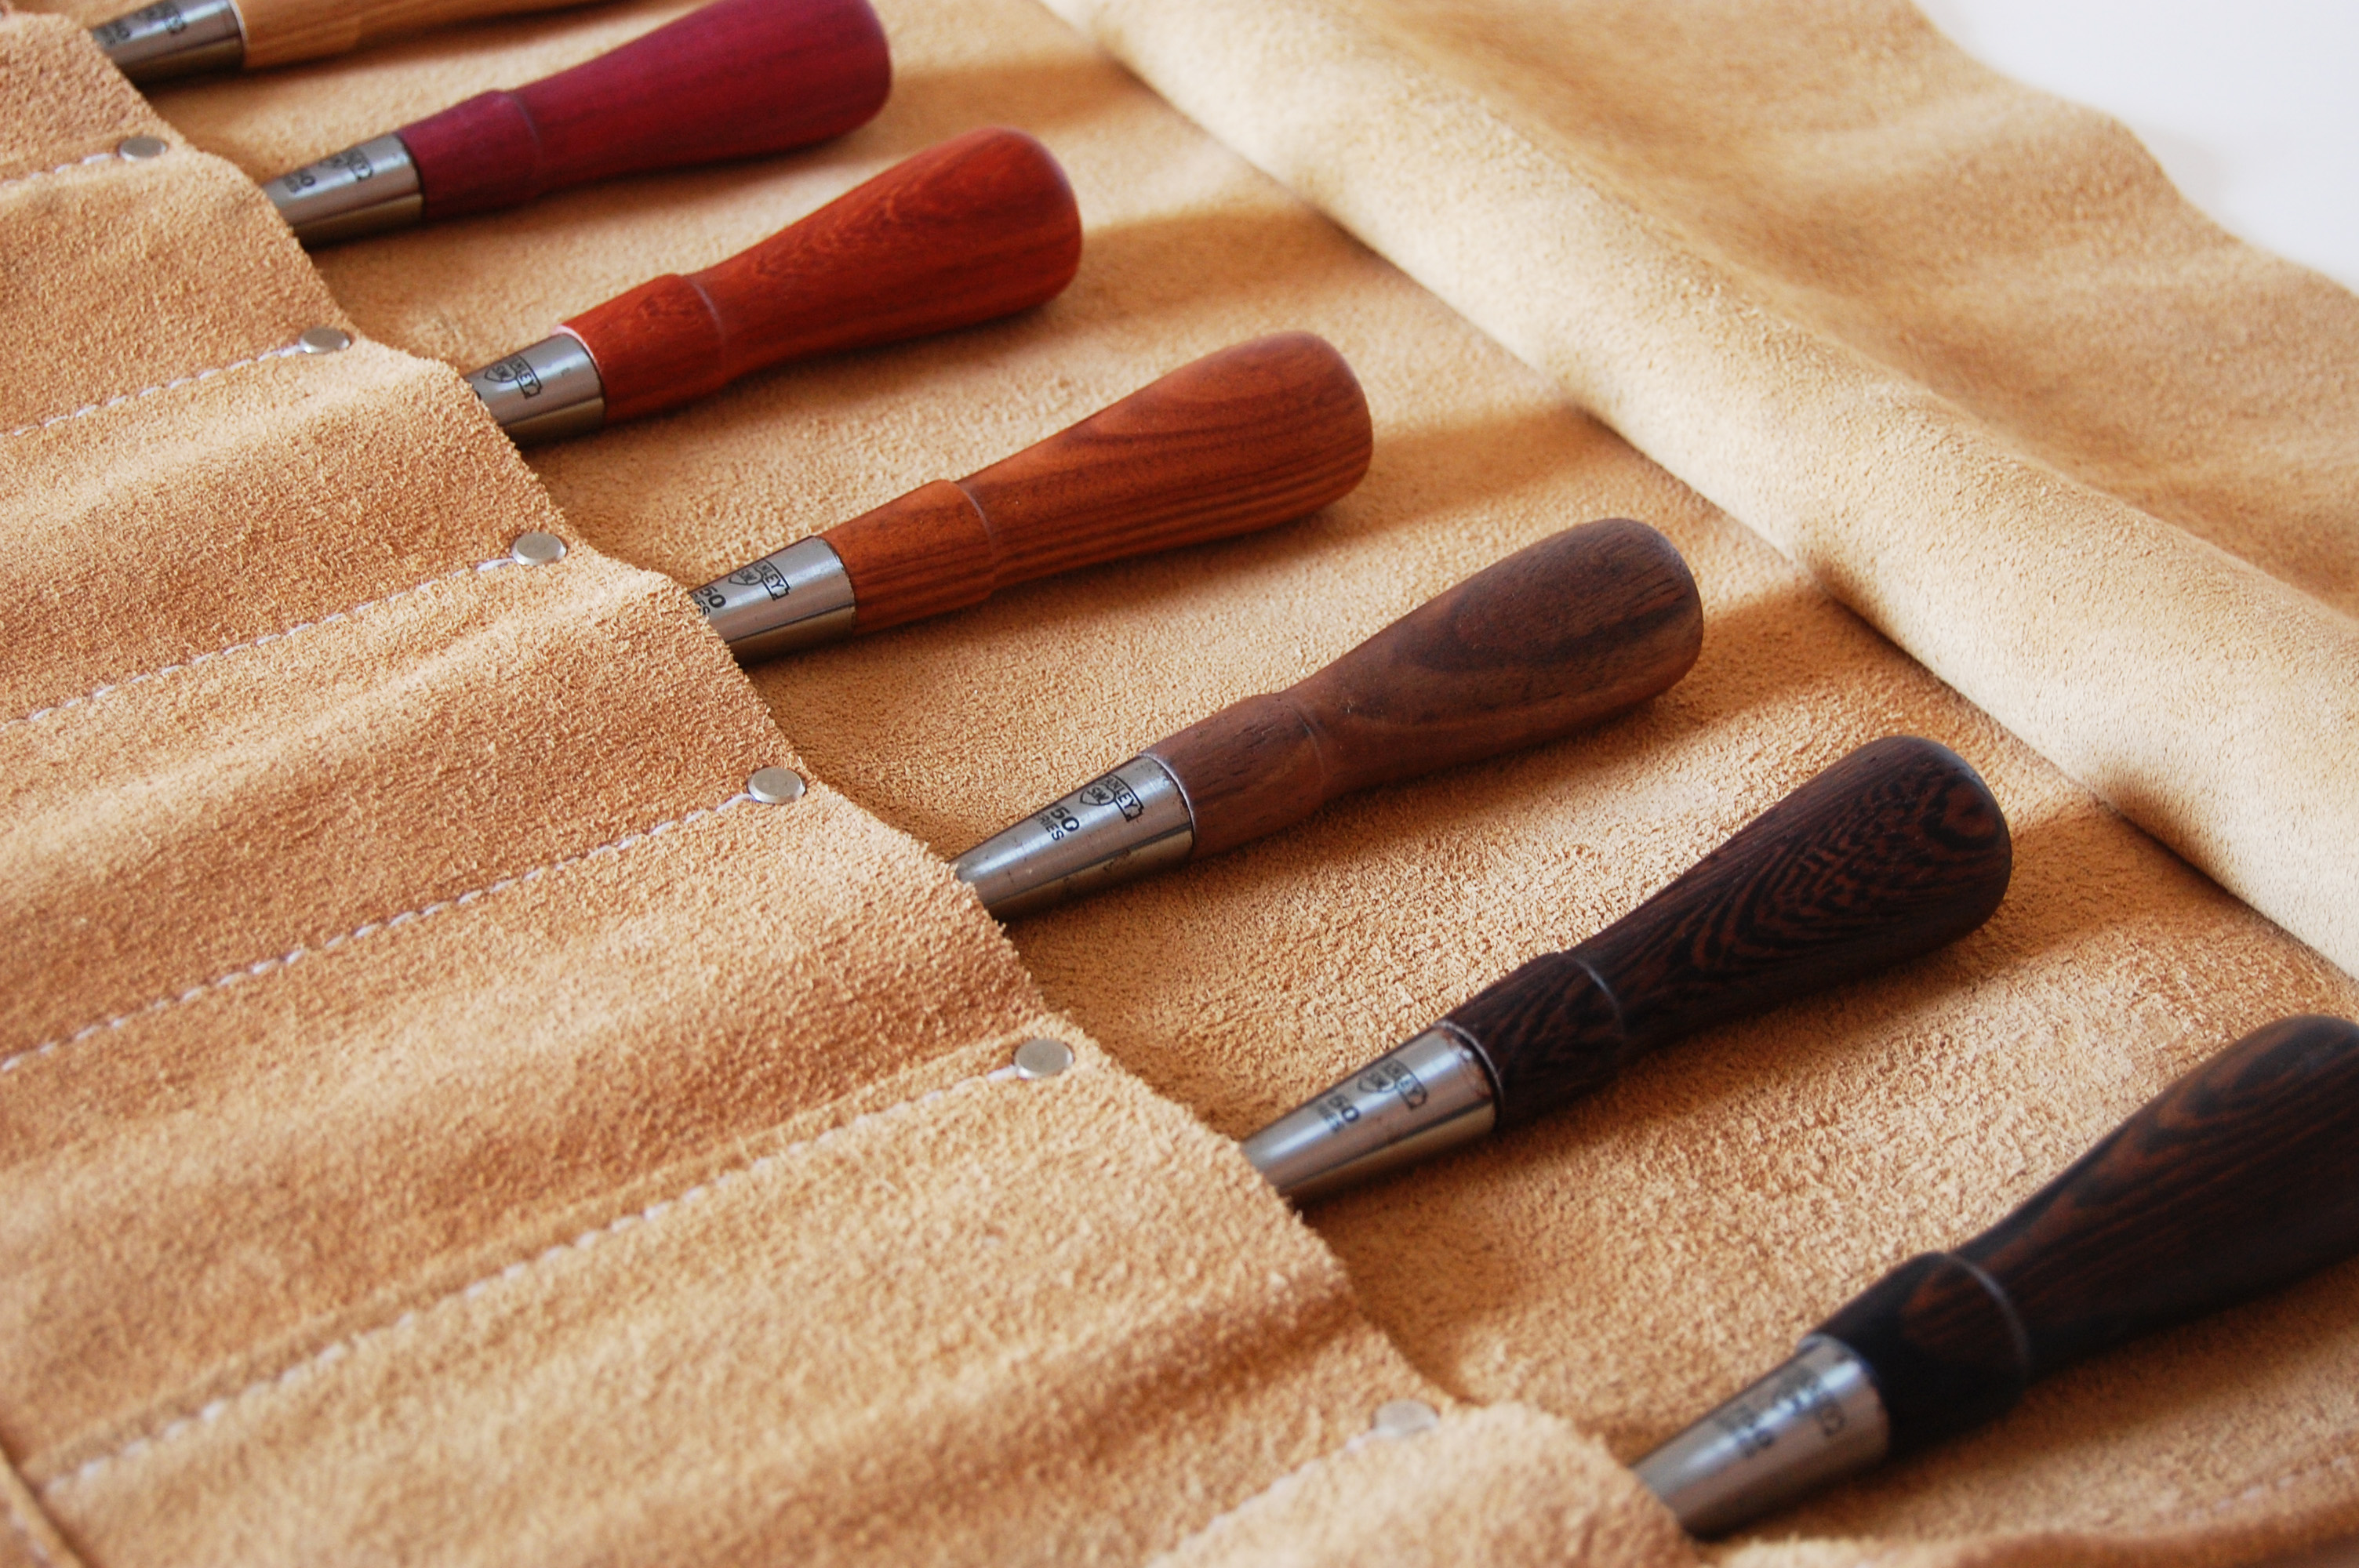 WOODEN CHISELS